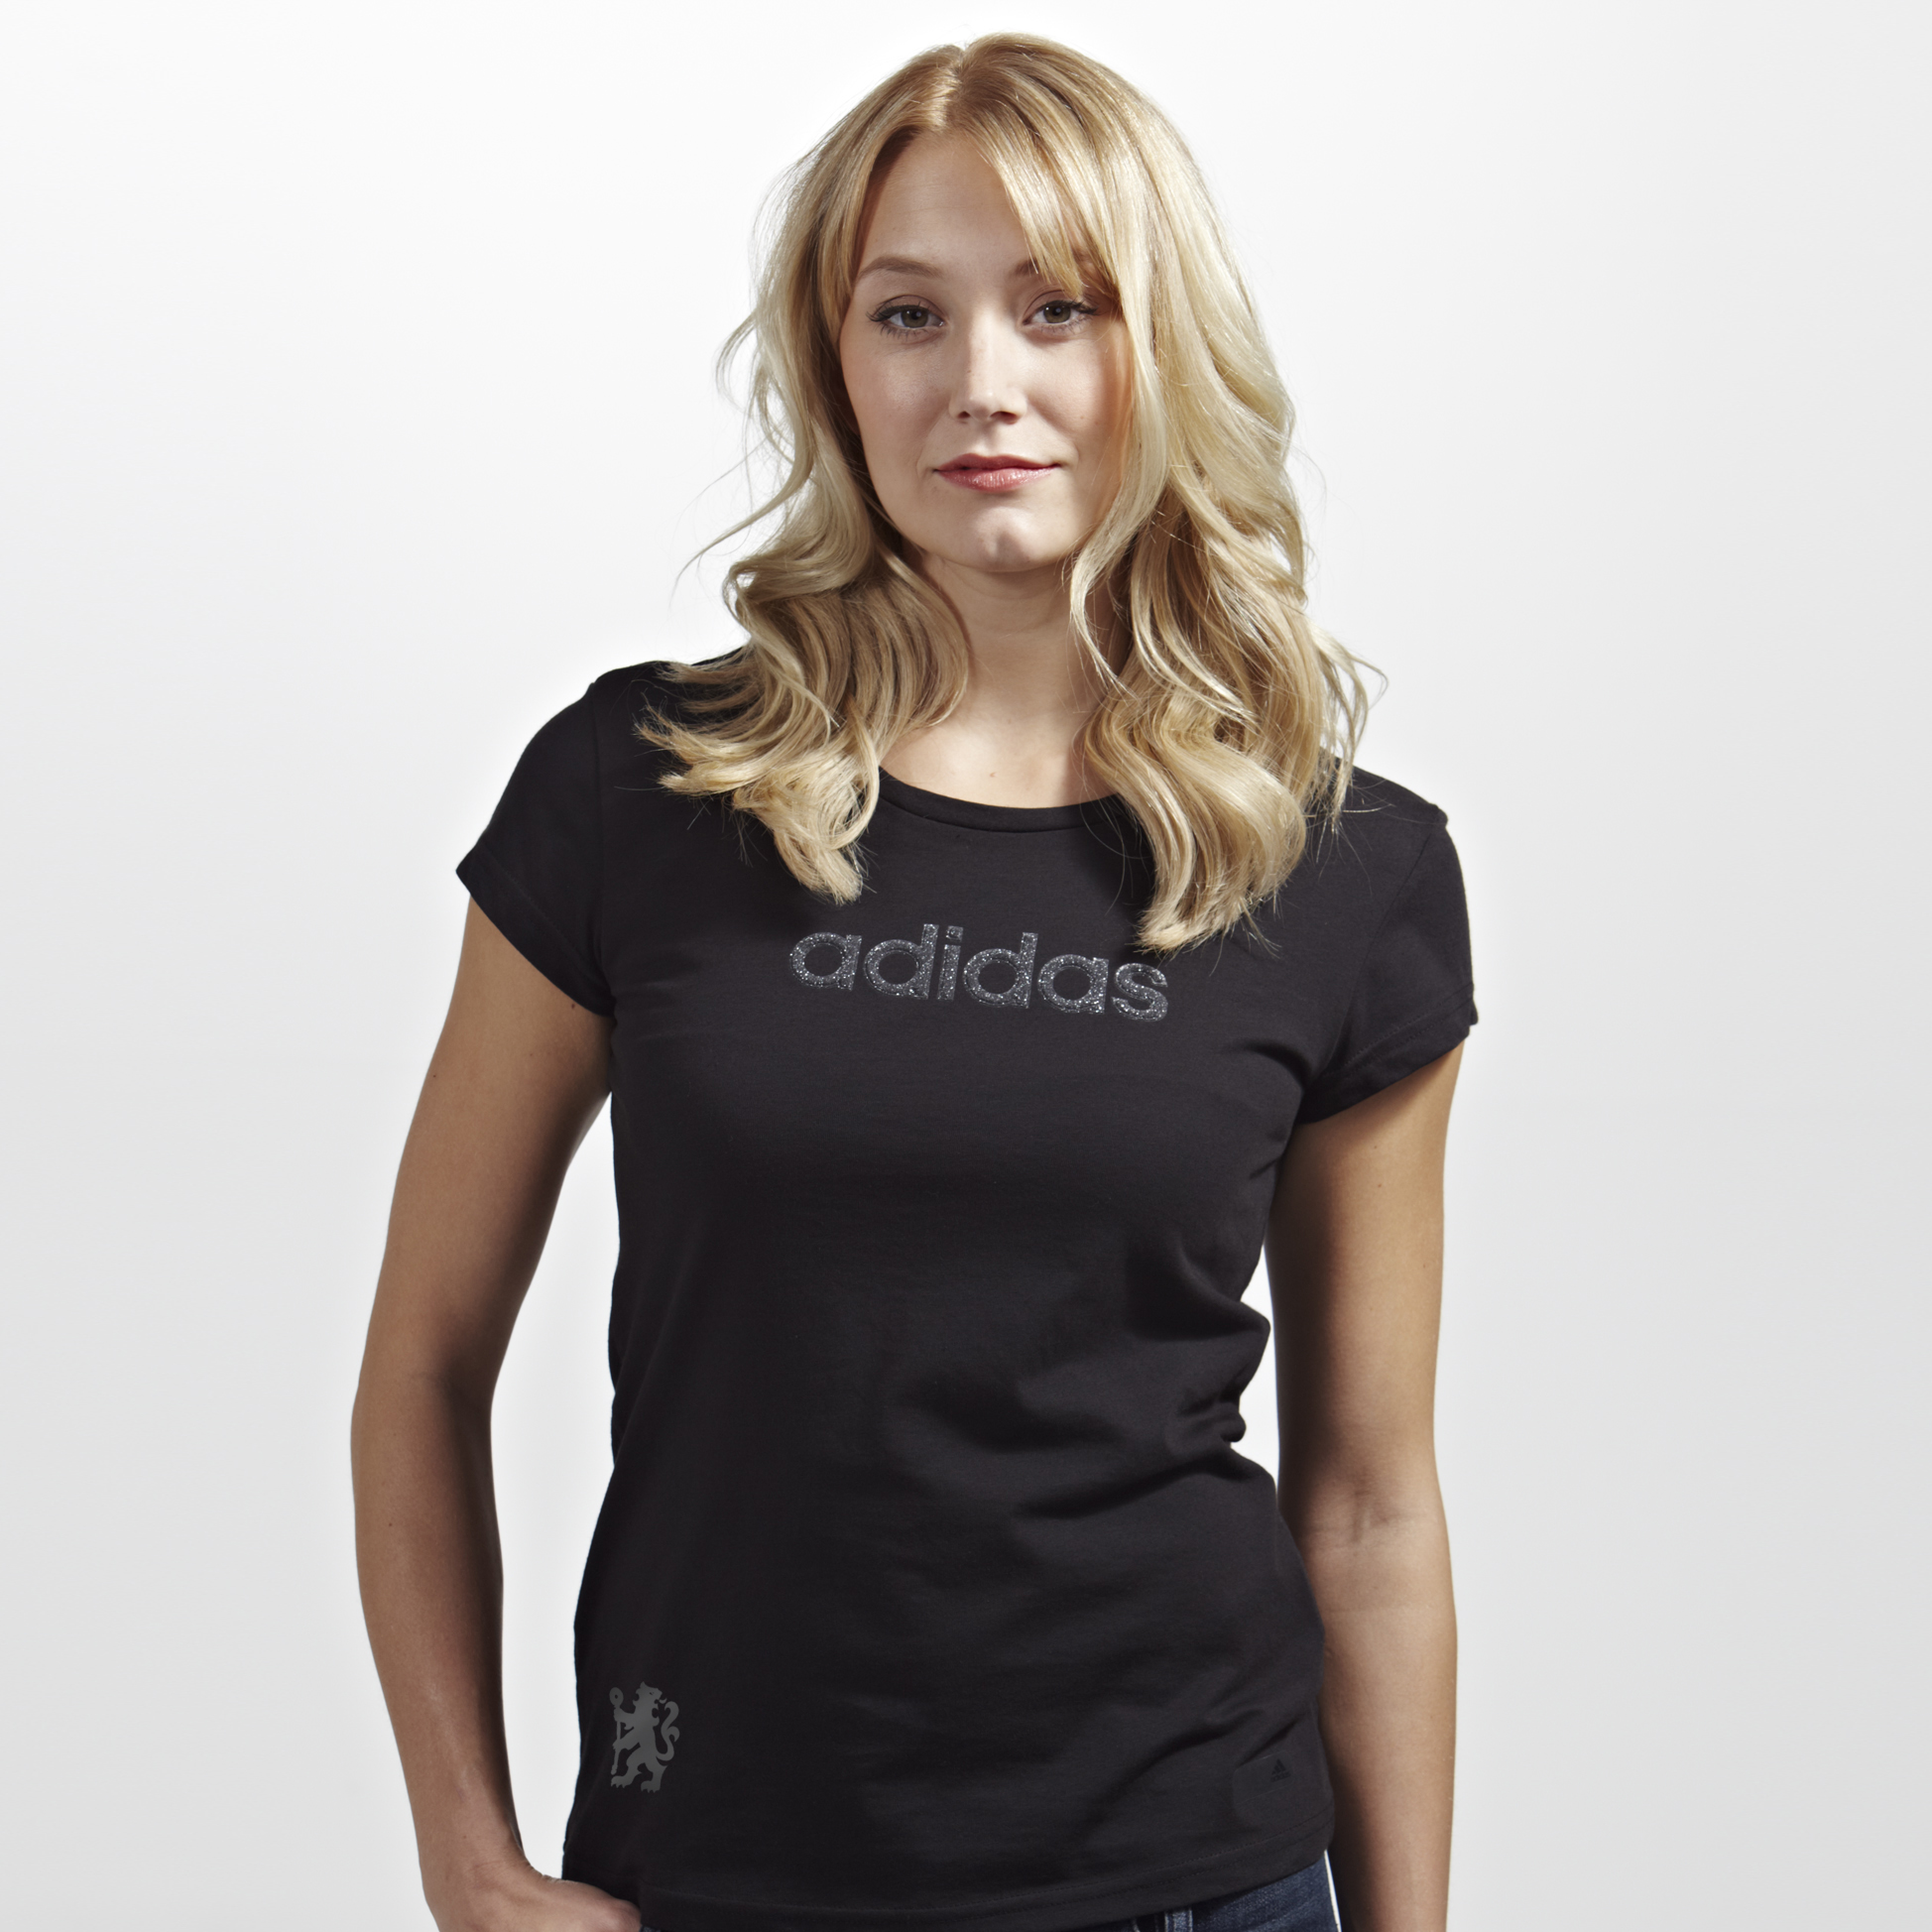 Chelsea adidas Glam T-Shirt - Womens Black